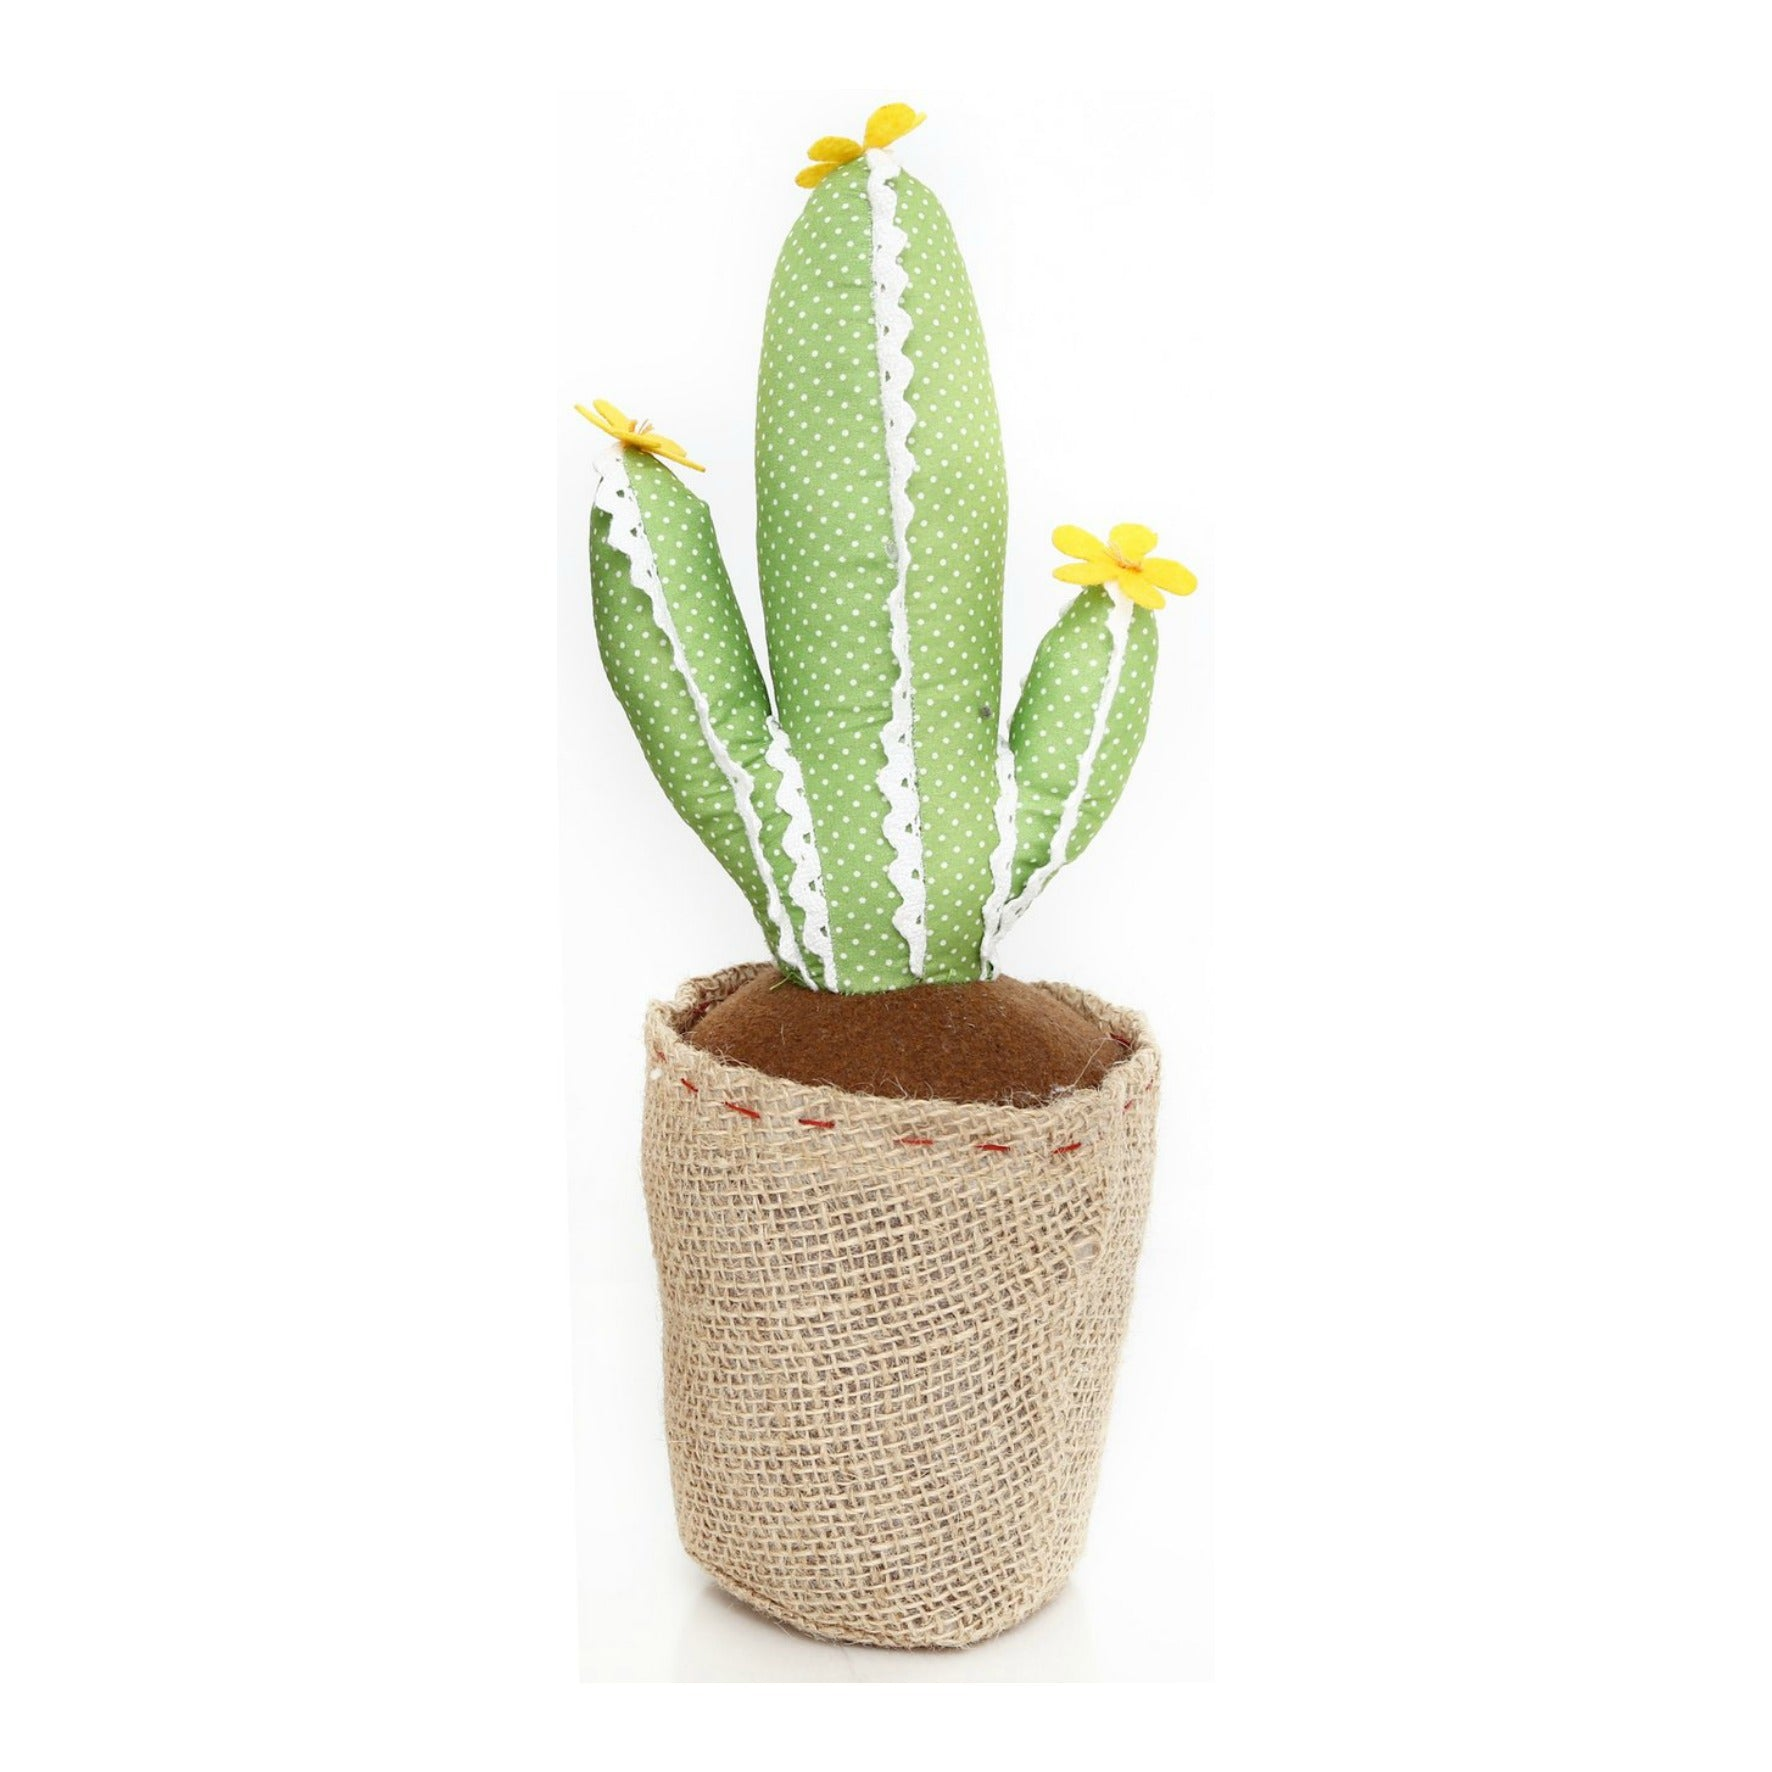 Light Green with Lace Cactus Doorstop 34cm, Building Materials by Gifts24-7